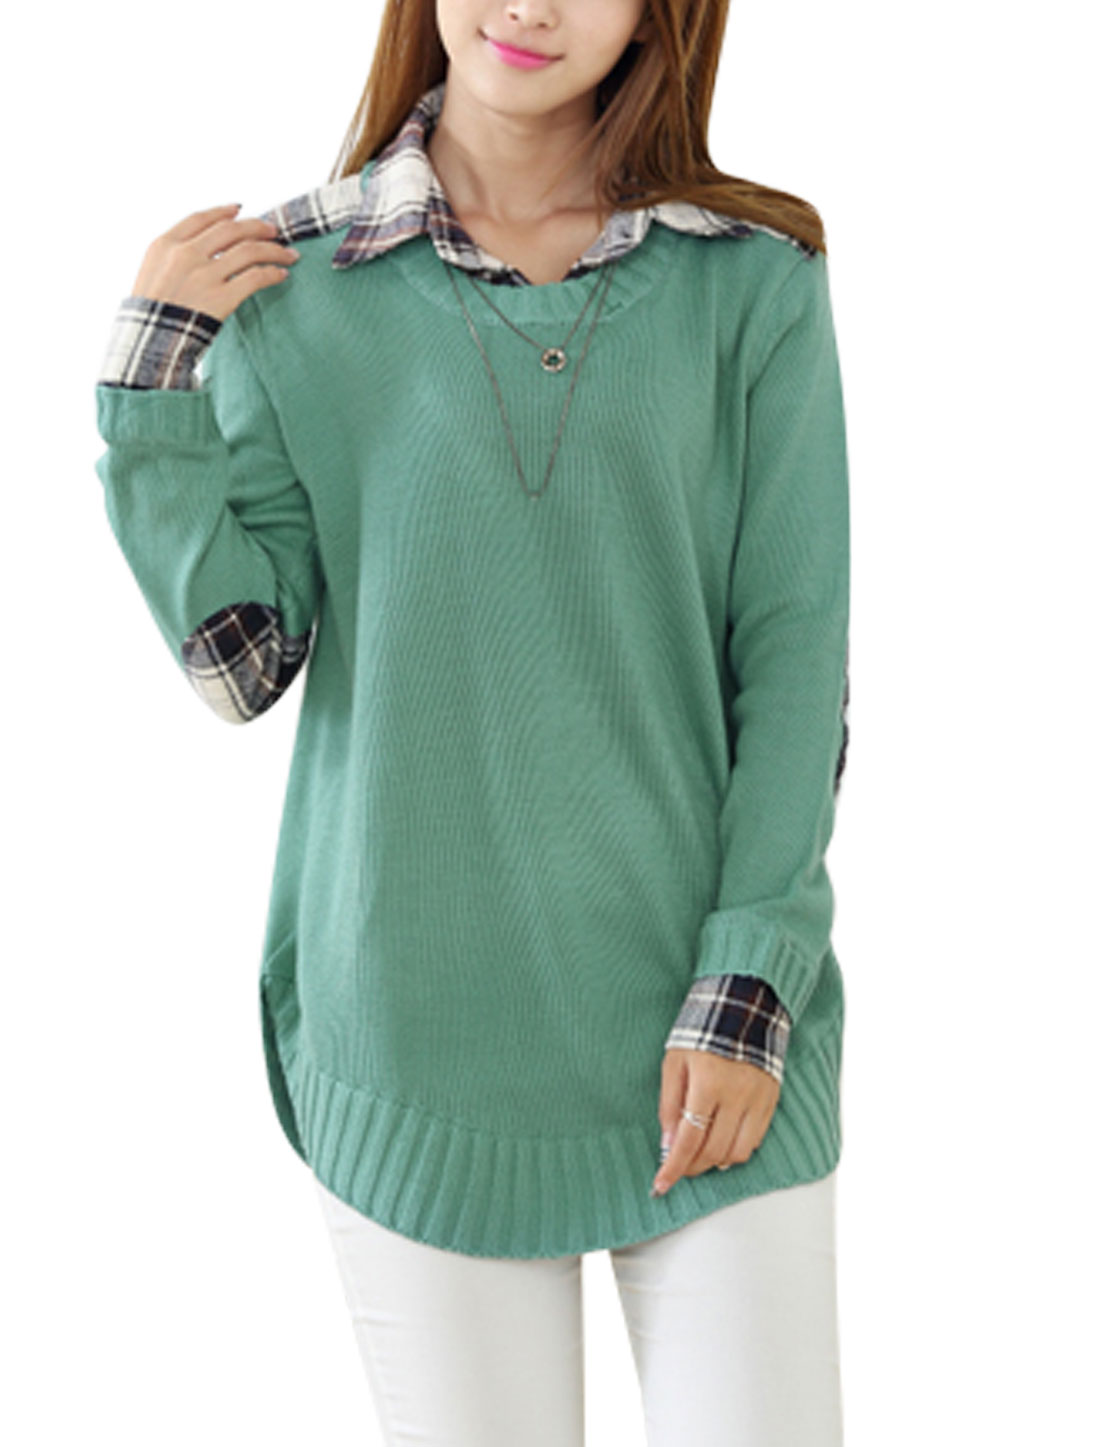 Layered Design Loose Slipover Green Tunic Sweater for Lady M